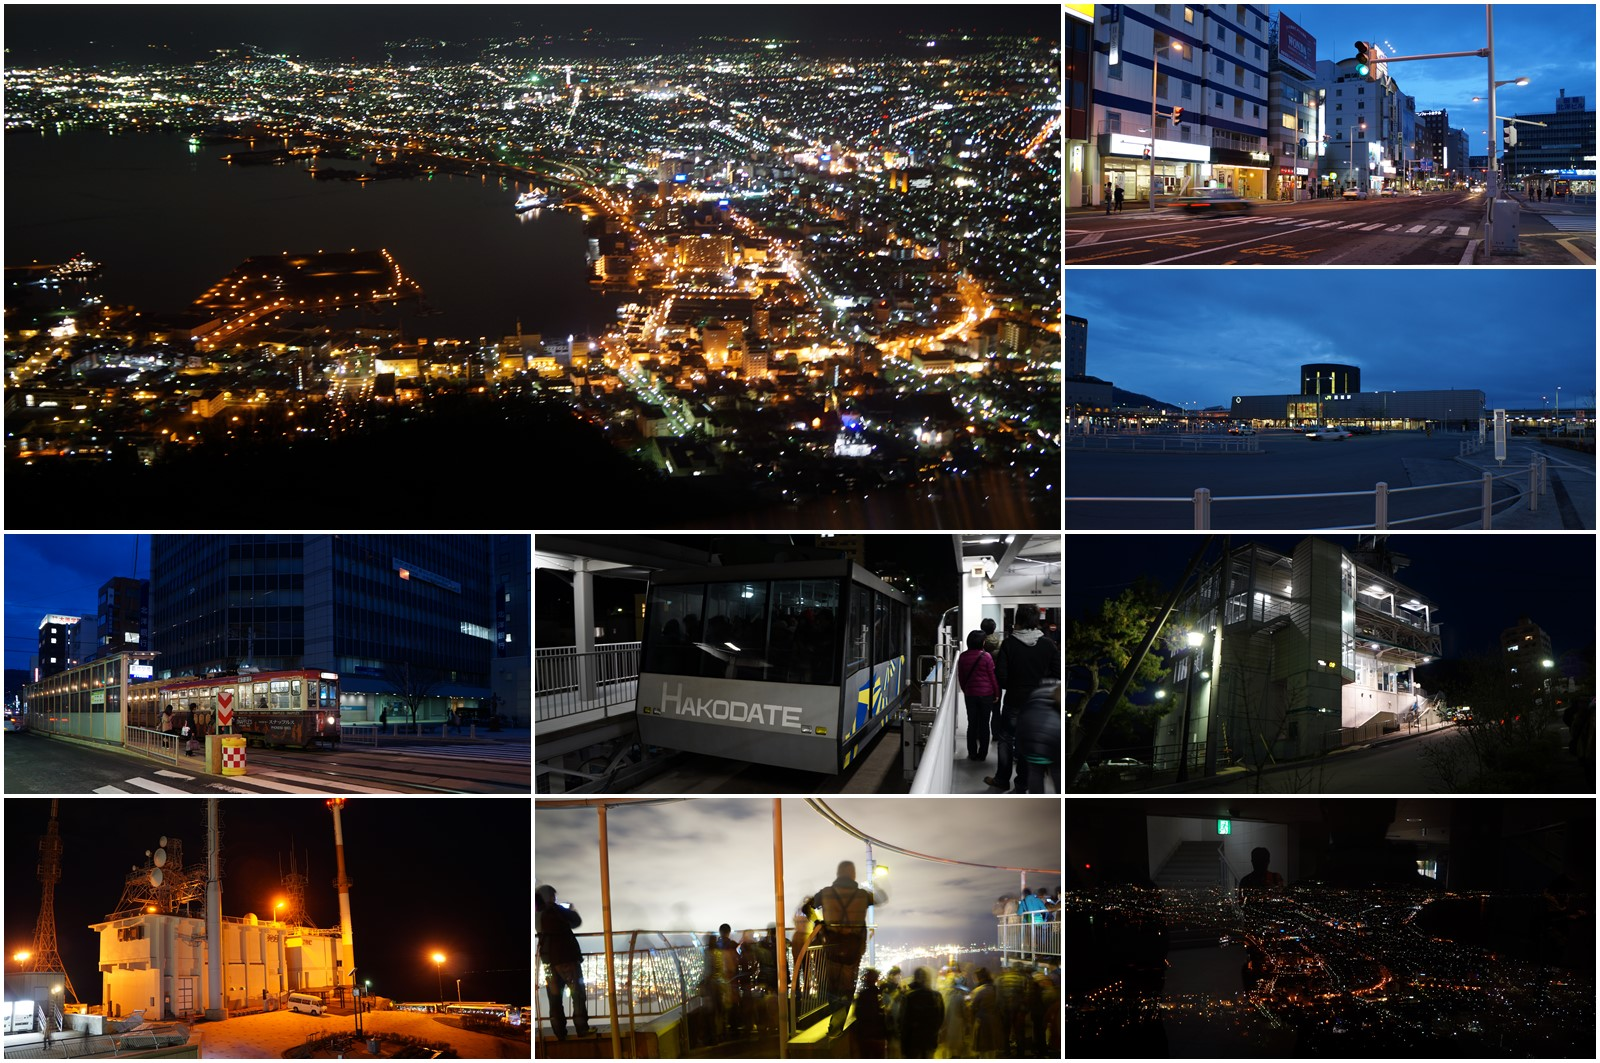 These Pictures Is The Reason Why I Am Falling In Love With Hakodate